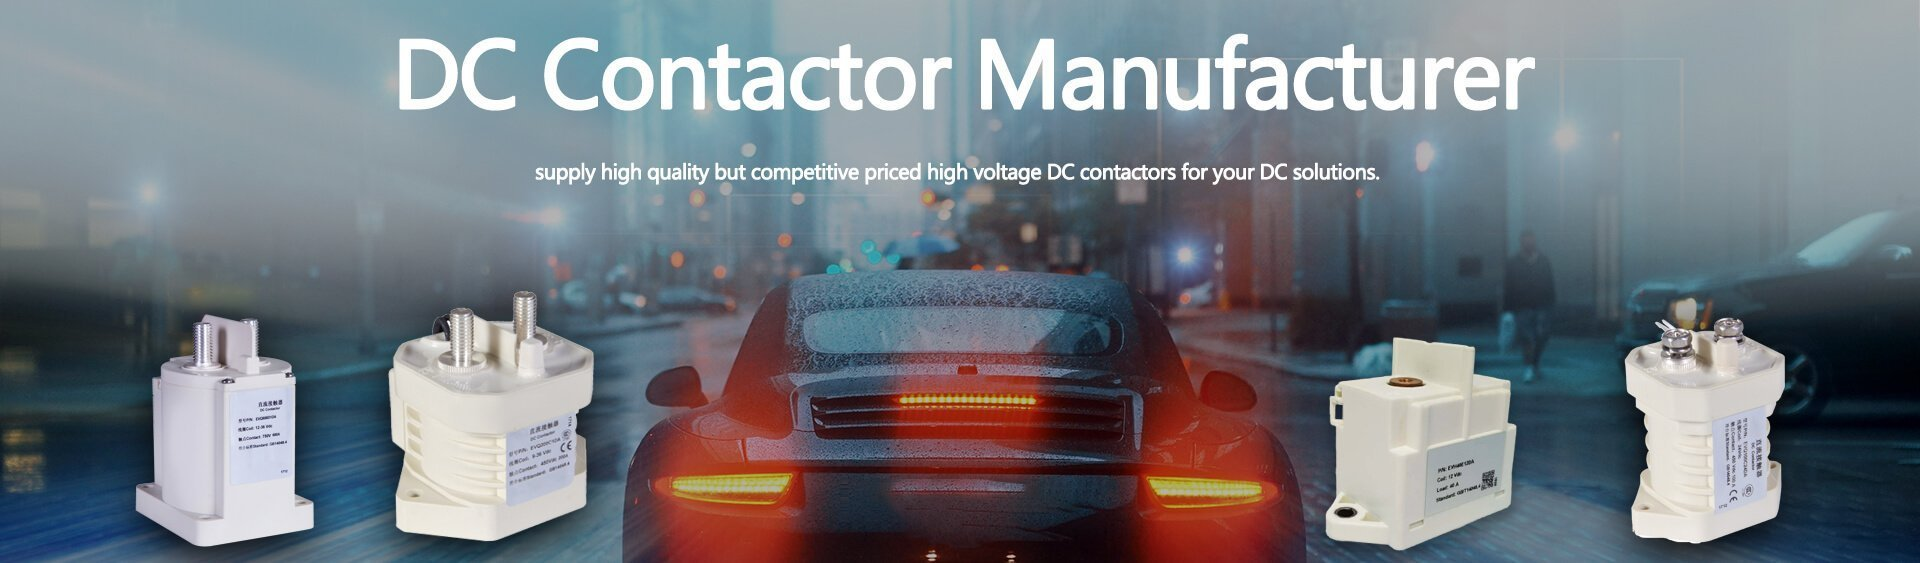 High voltage DC contactor manufacturer for Electric vehicle charging